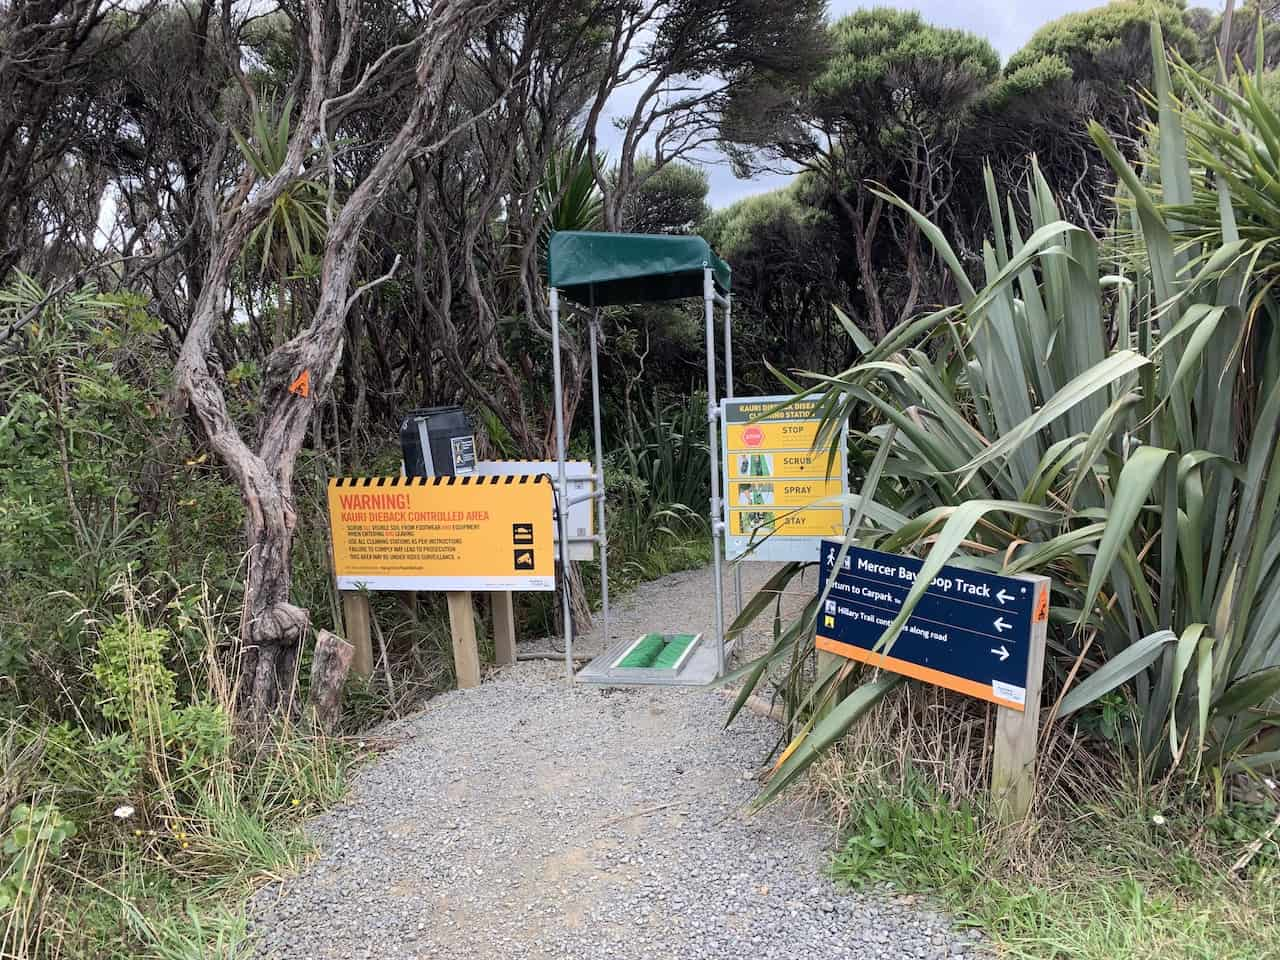 Mercer Bay Loop Track Entrance